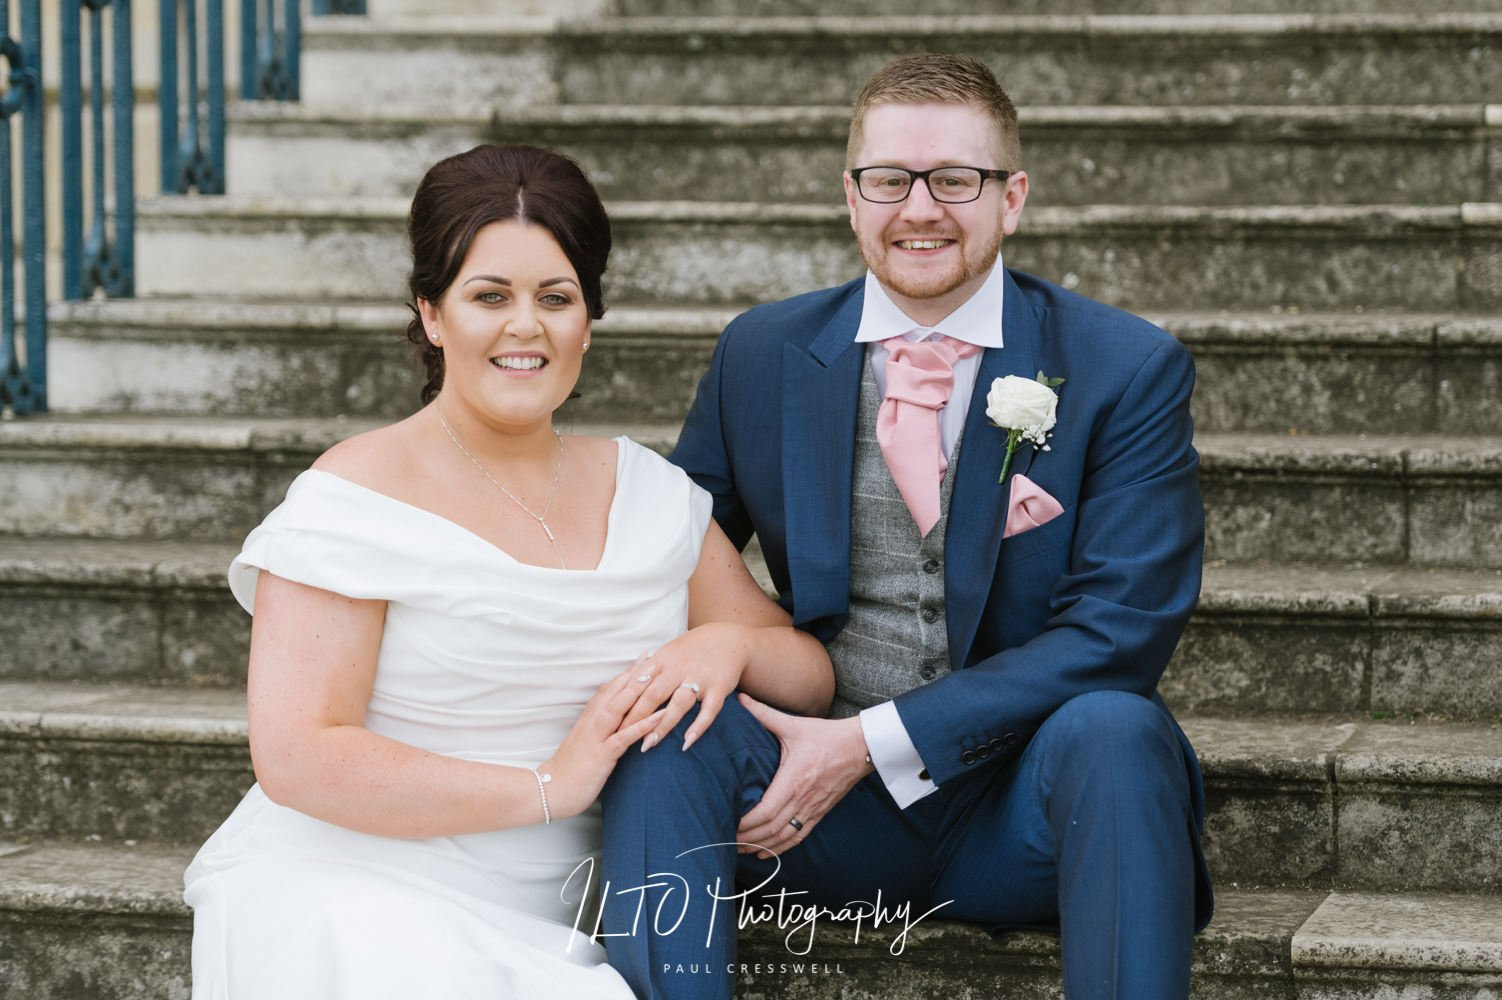 Affordable South Yorkshire wedding photographer cusworth hall